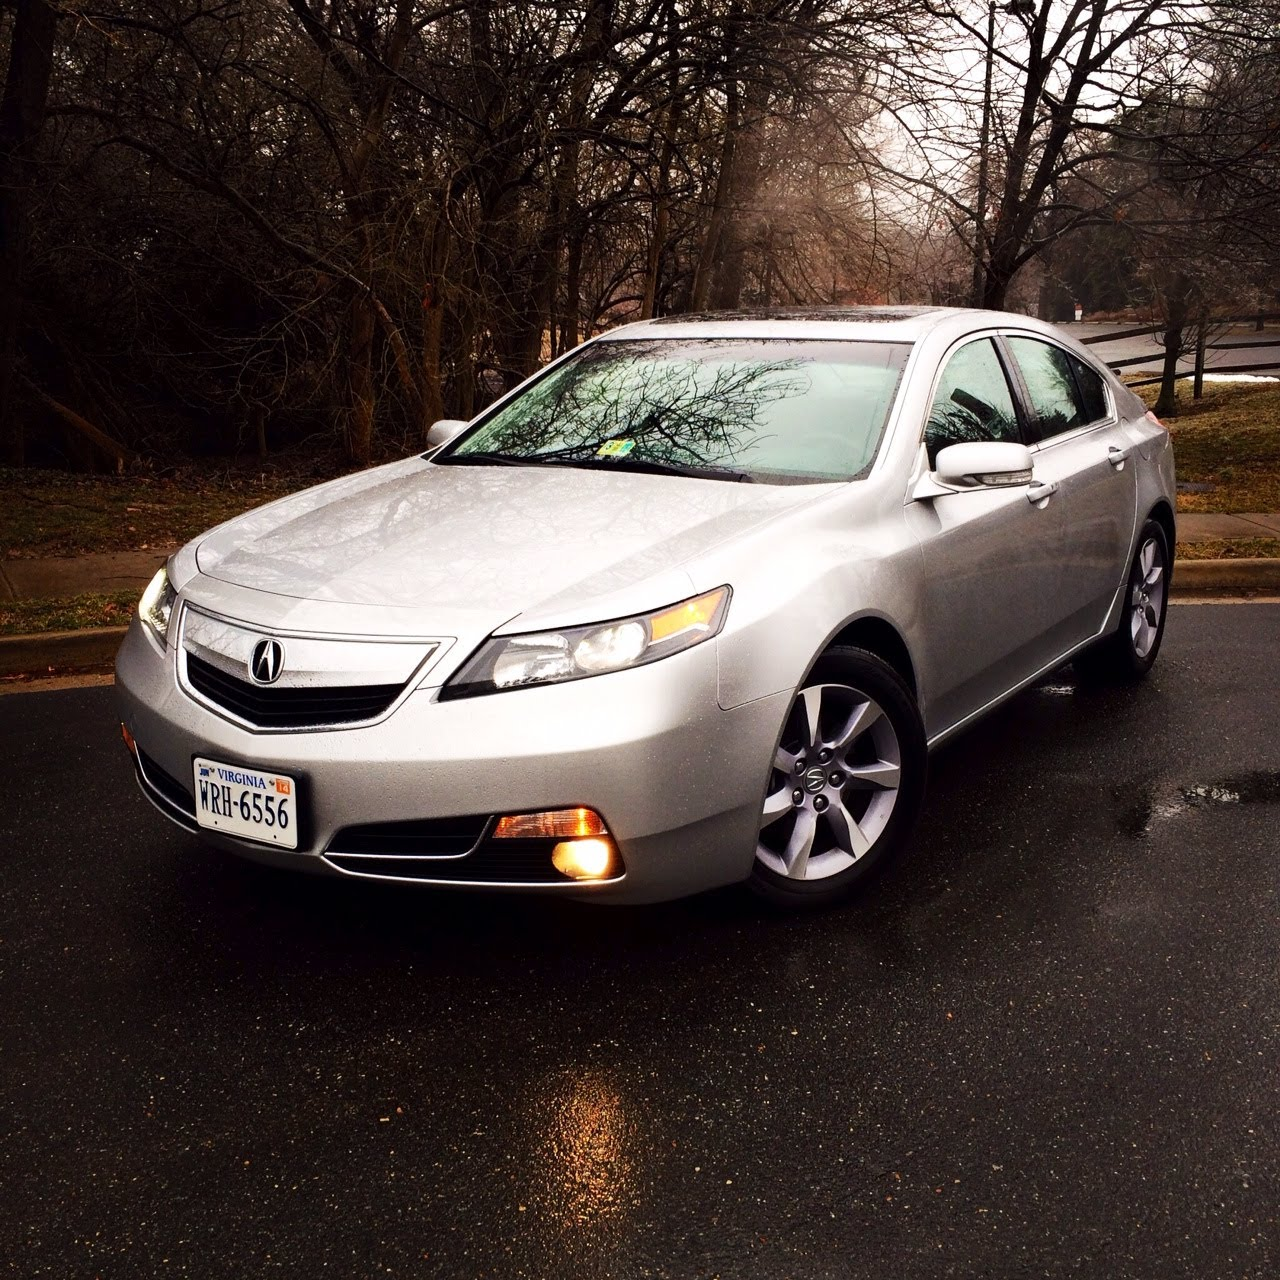 2014 Acura TL Car Review Video Florida